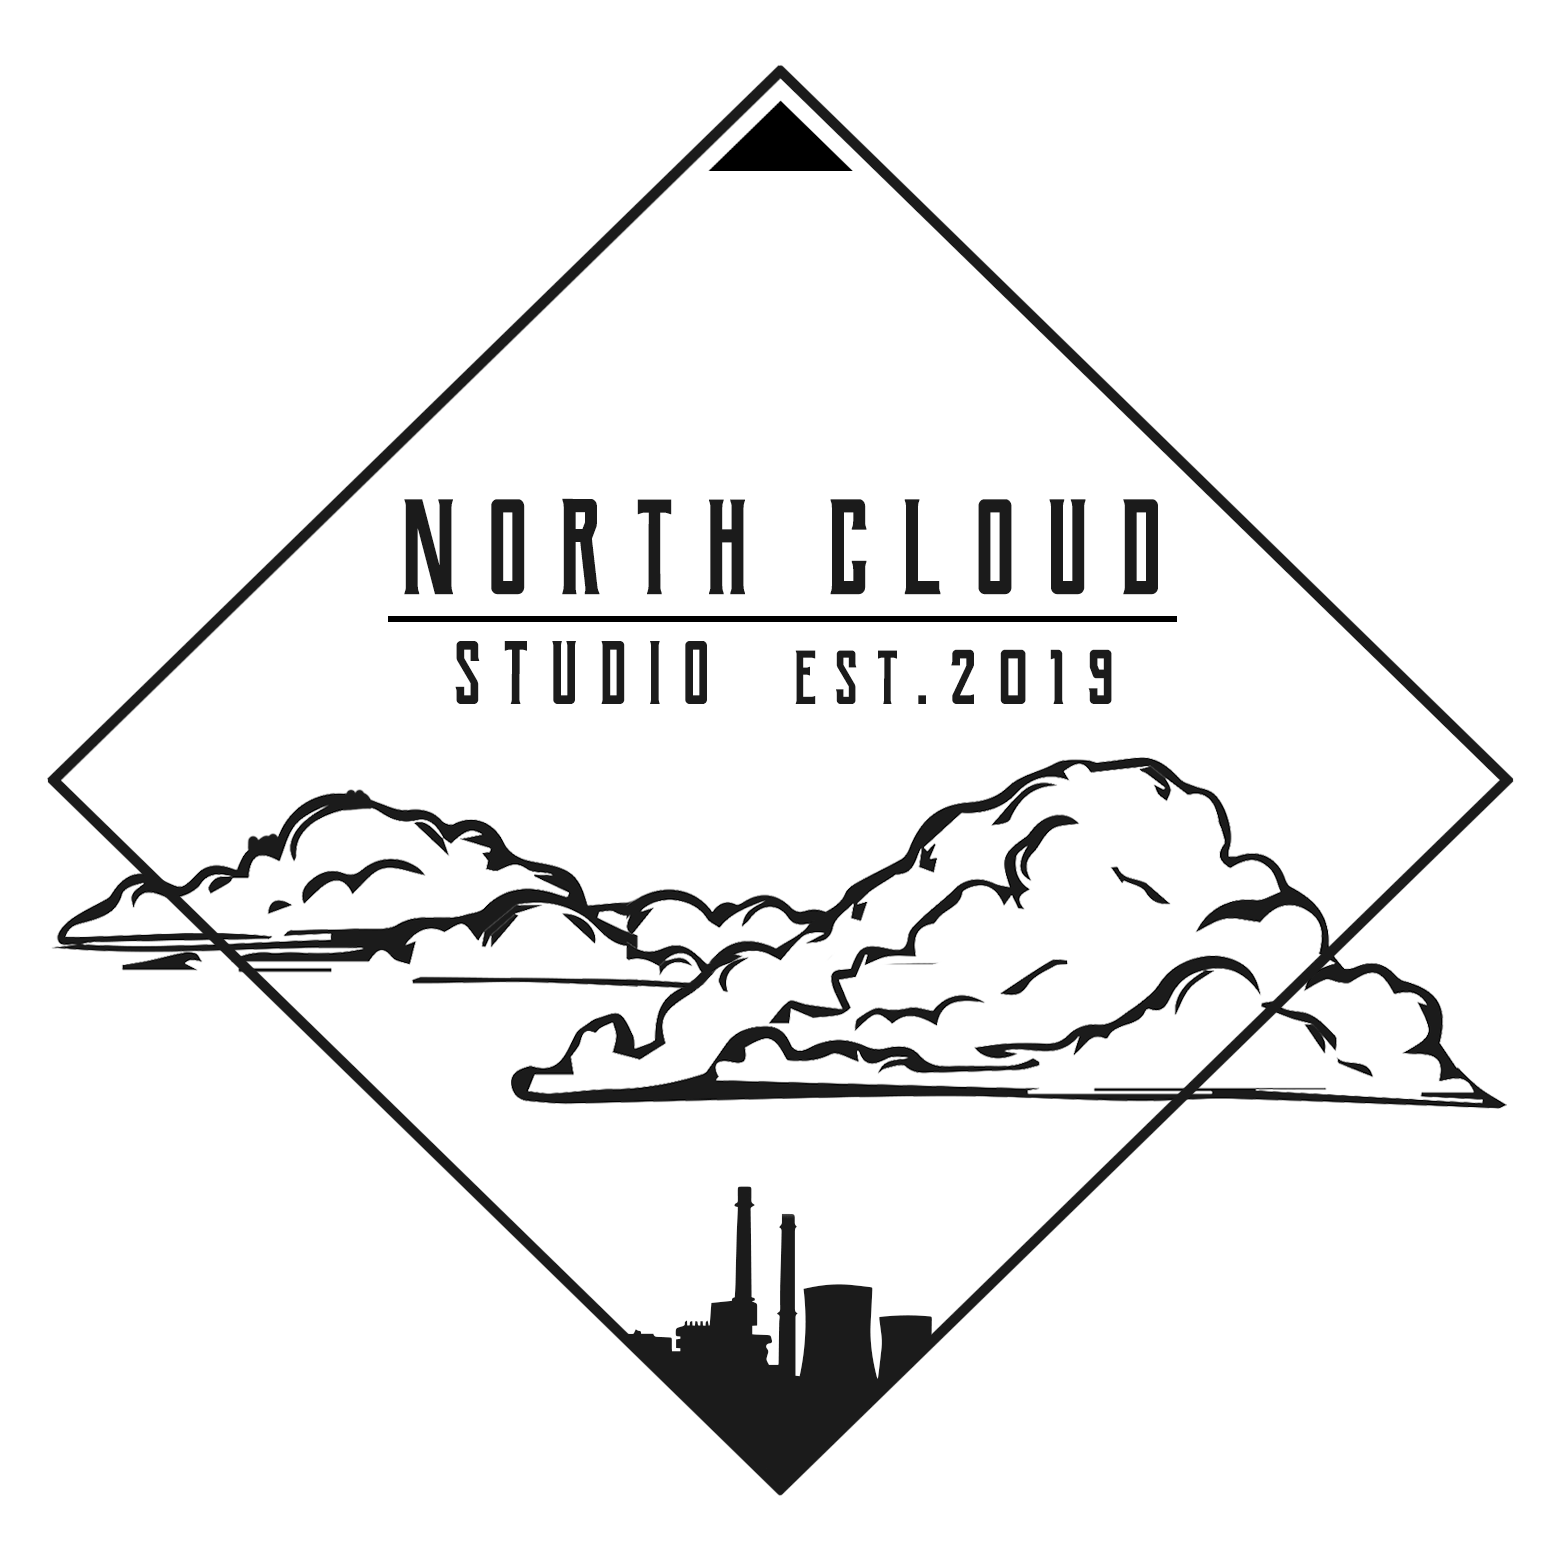 NorthCloudStudio 〜北雲工房〜